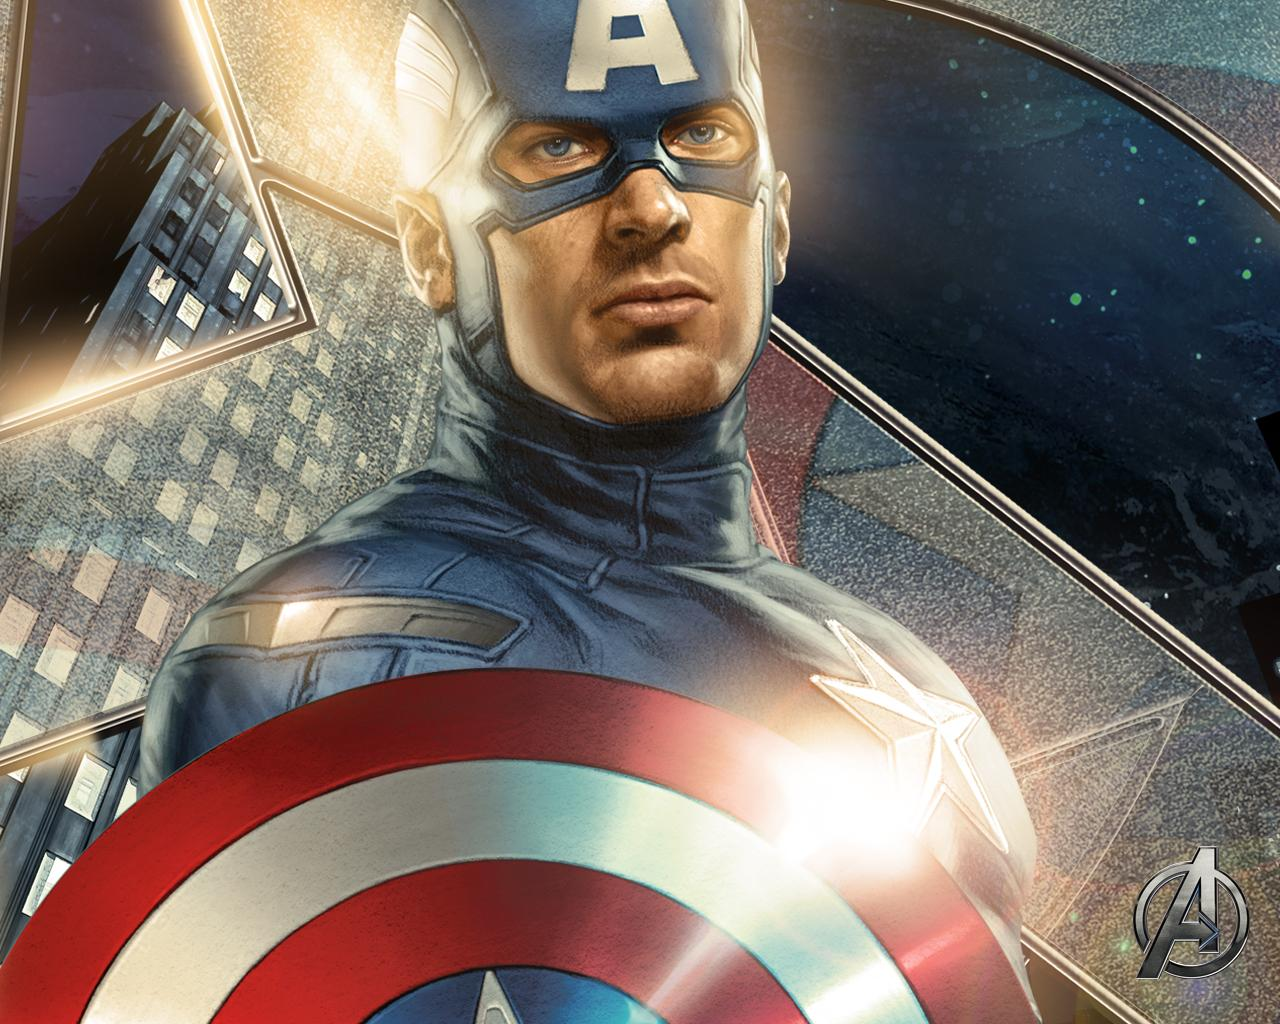 Captain america avengers hd wallpaper hd wallpapers - Fondos de pantalla 3d avengers ...